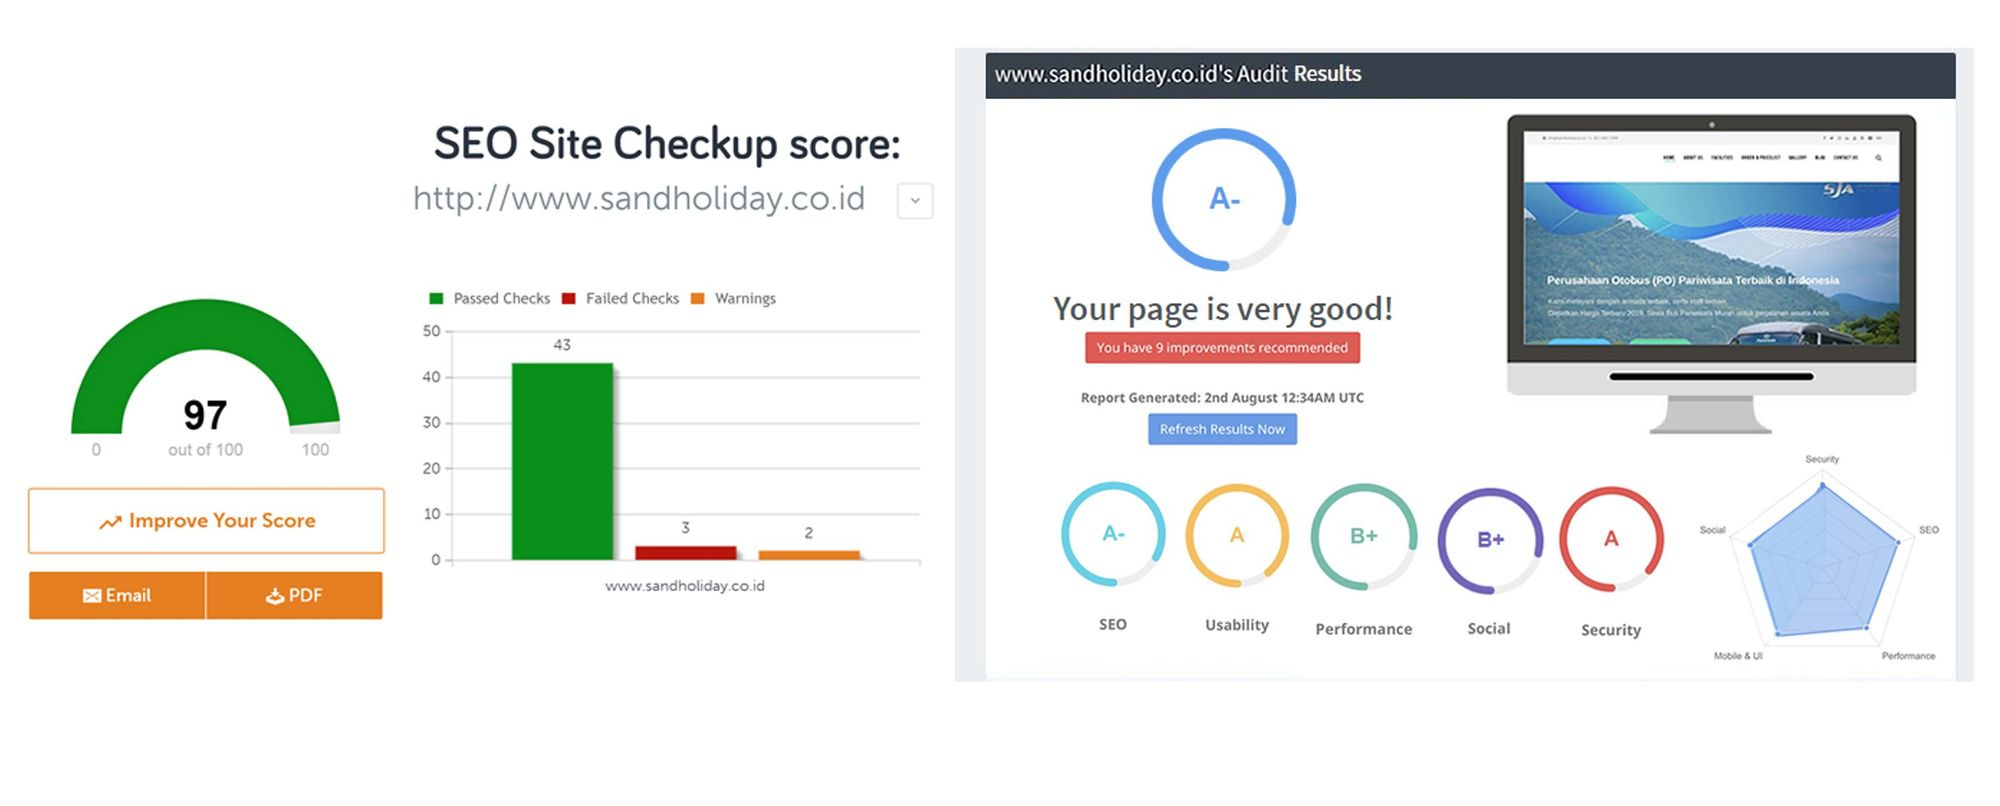 SEO Site Checkup Score - On-page SEO Audit - Jasa SEO Profesional - Arfadia